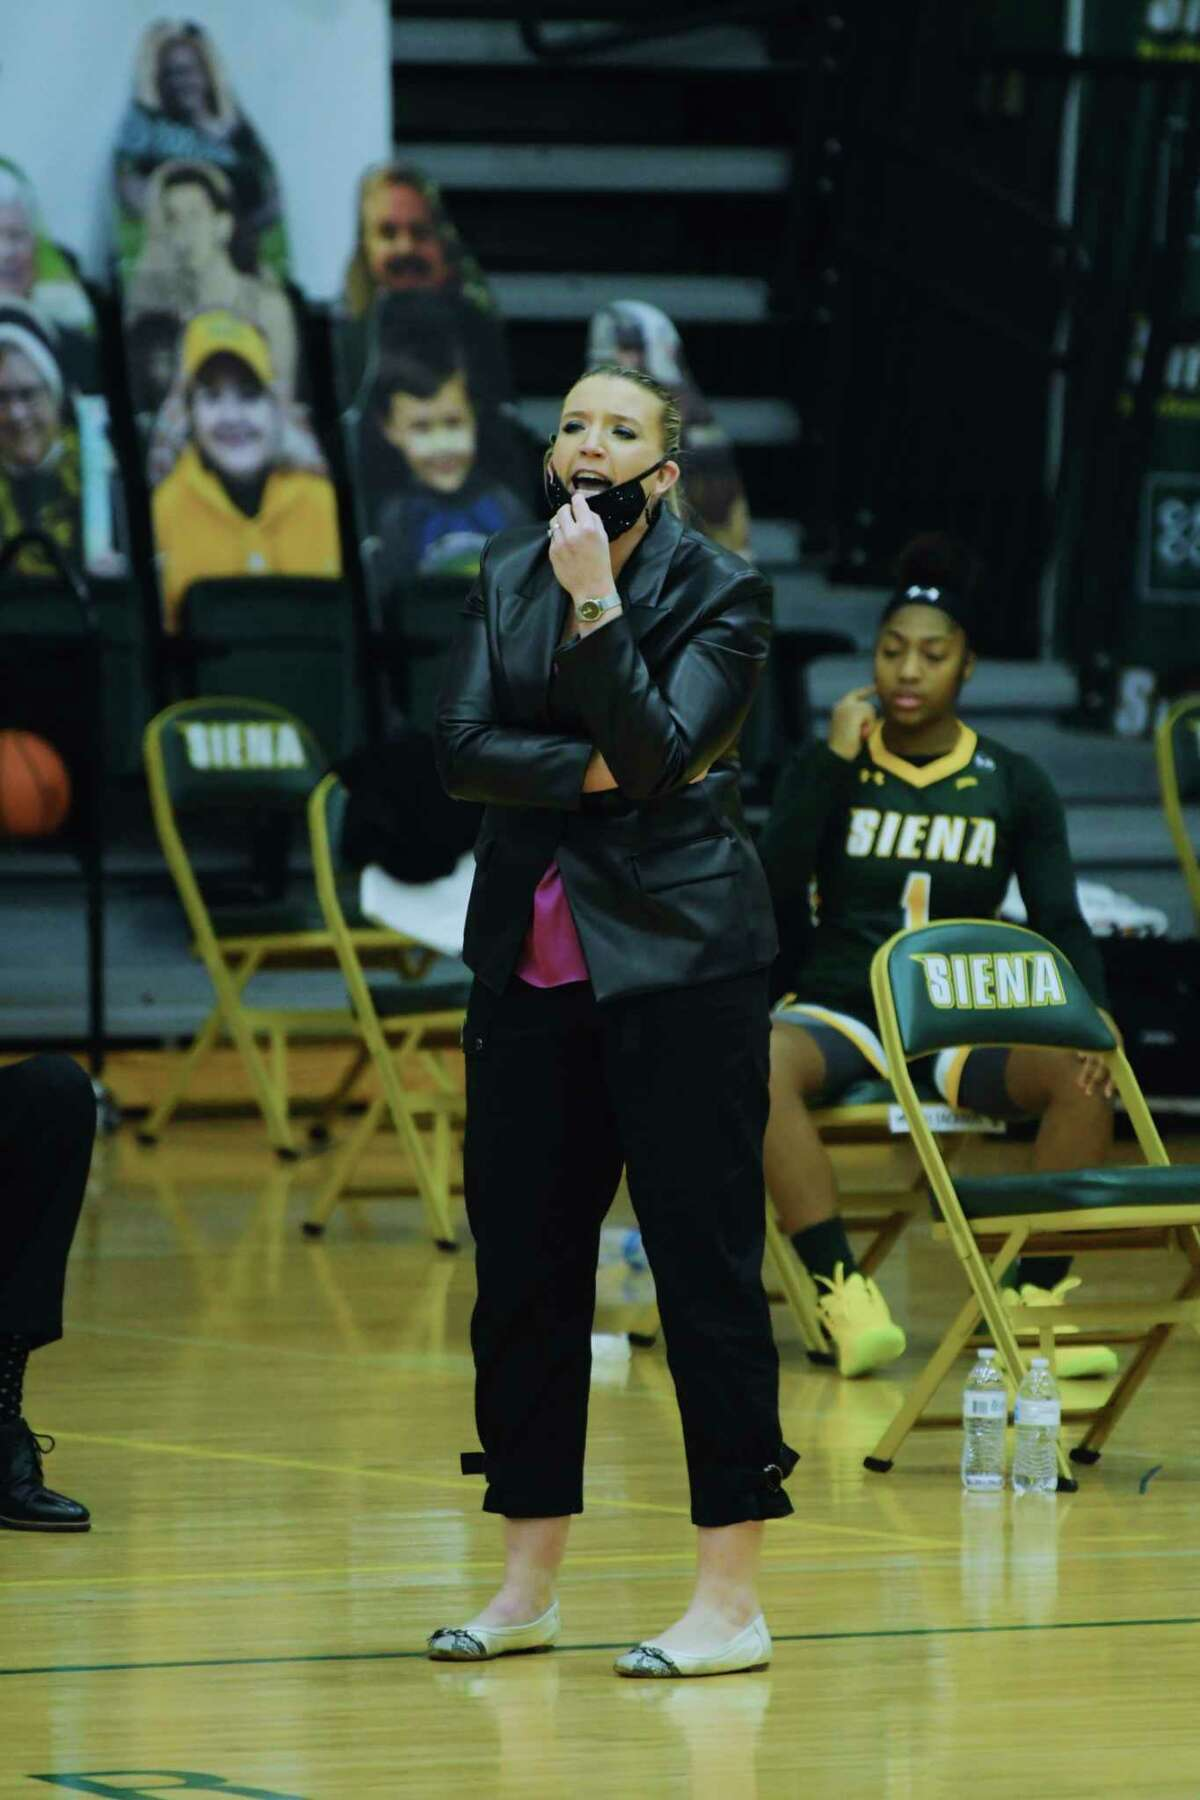 Siena College women's basketball coach, Ali Jaques, yells to her players during their game against Marist College on Sunday, Feb. 14, 2021, in Loudonville, N.Y. (Paul Buckowski/Times Union)